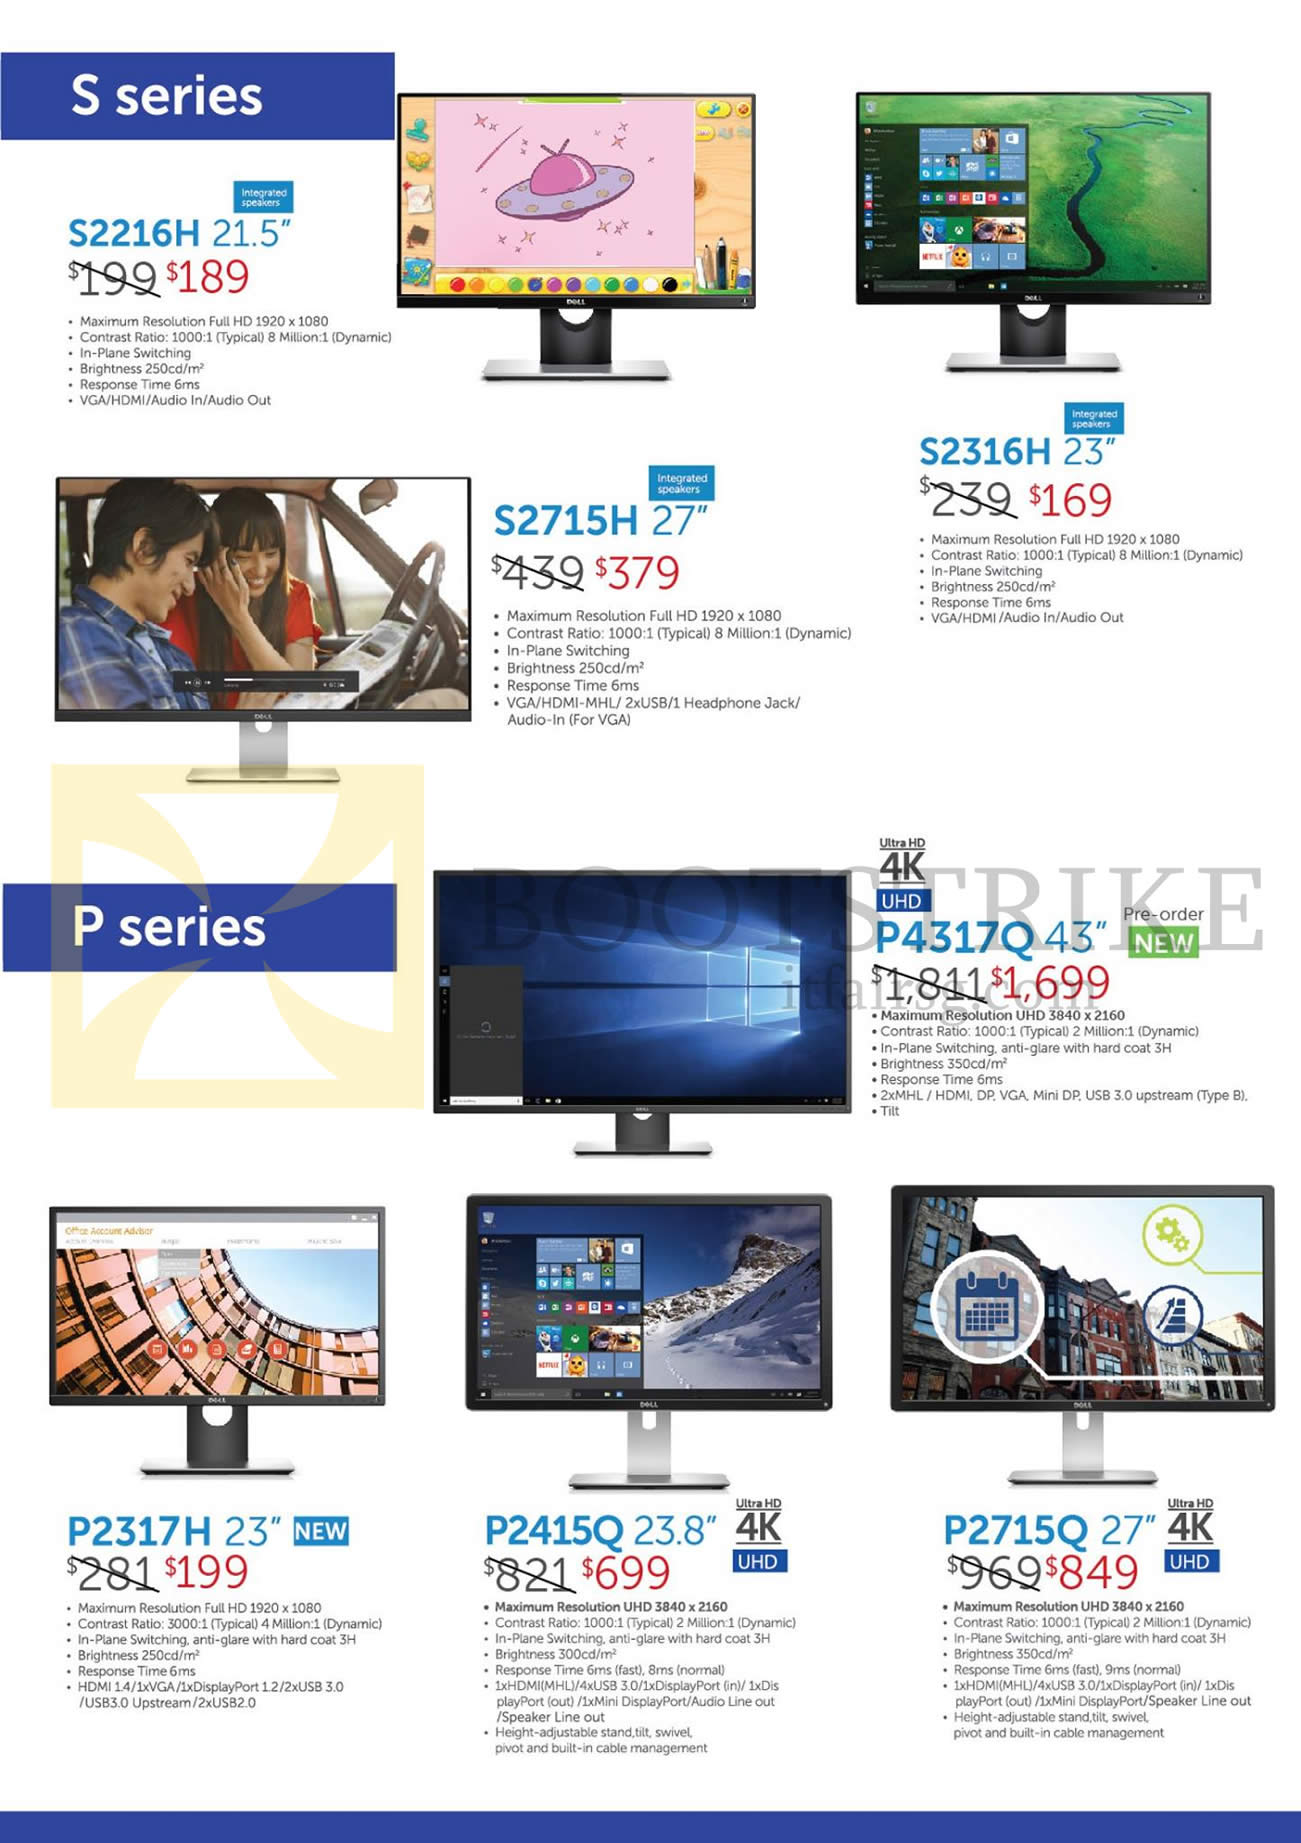 COMEX 2016 price list image brochure of Dell Monitors UHD S2216H, S2715H, S2316H, P4317Q, P2317H, P2415Q, P2715Q